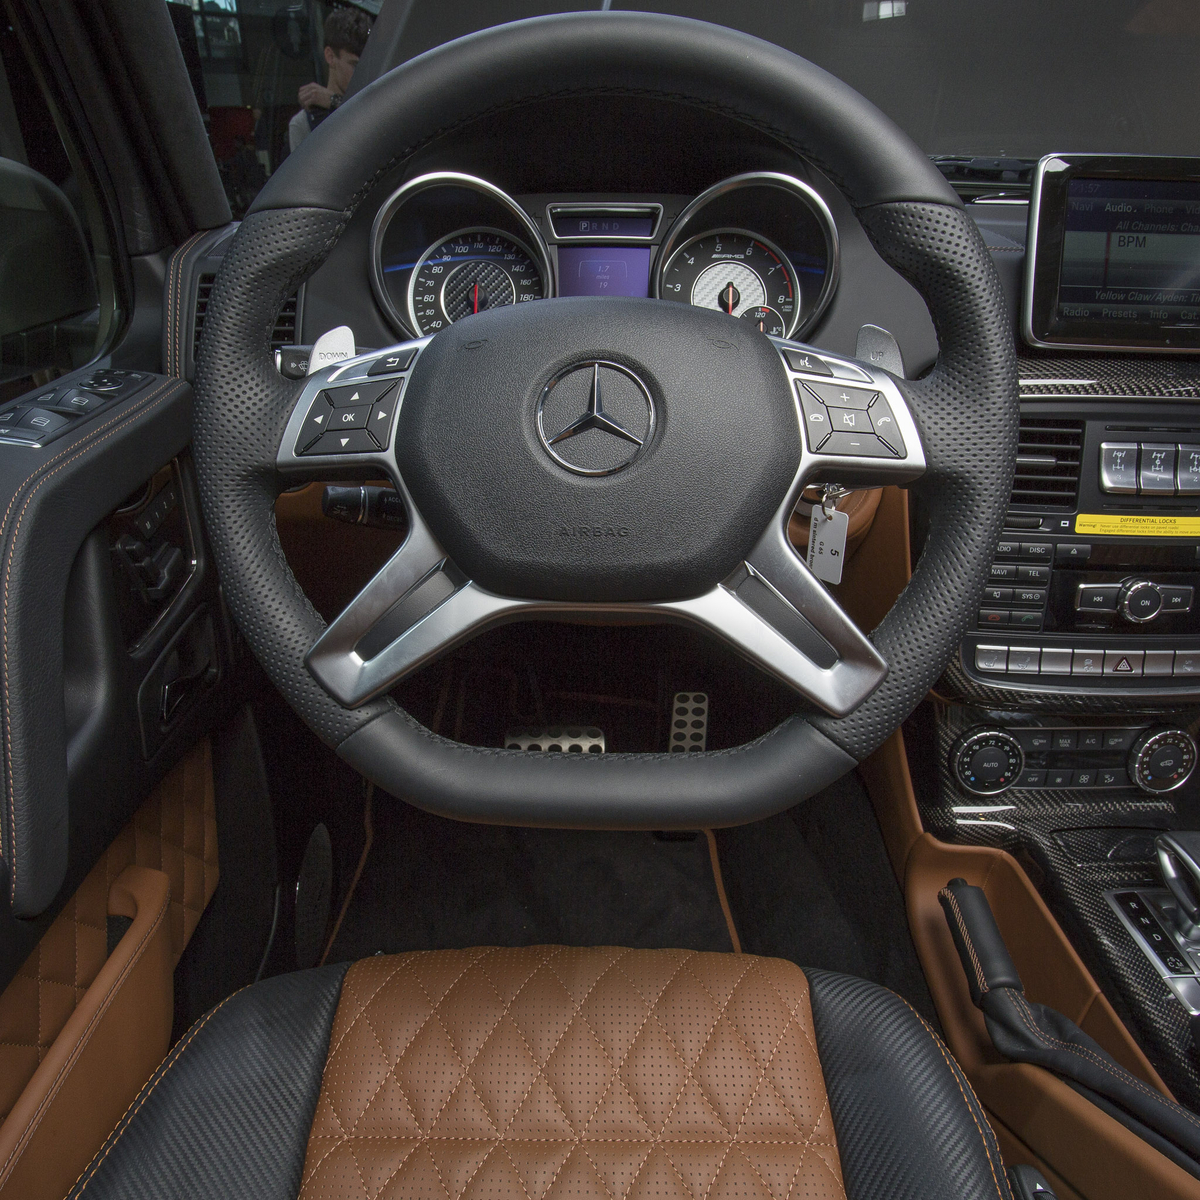 2019 Mercedes Amg E63 S Wagon: 2016 Mercedes-AMG G65 Pricing Announced